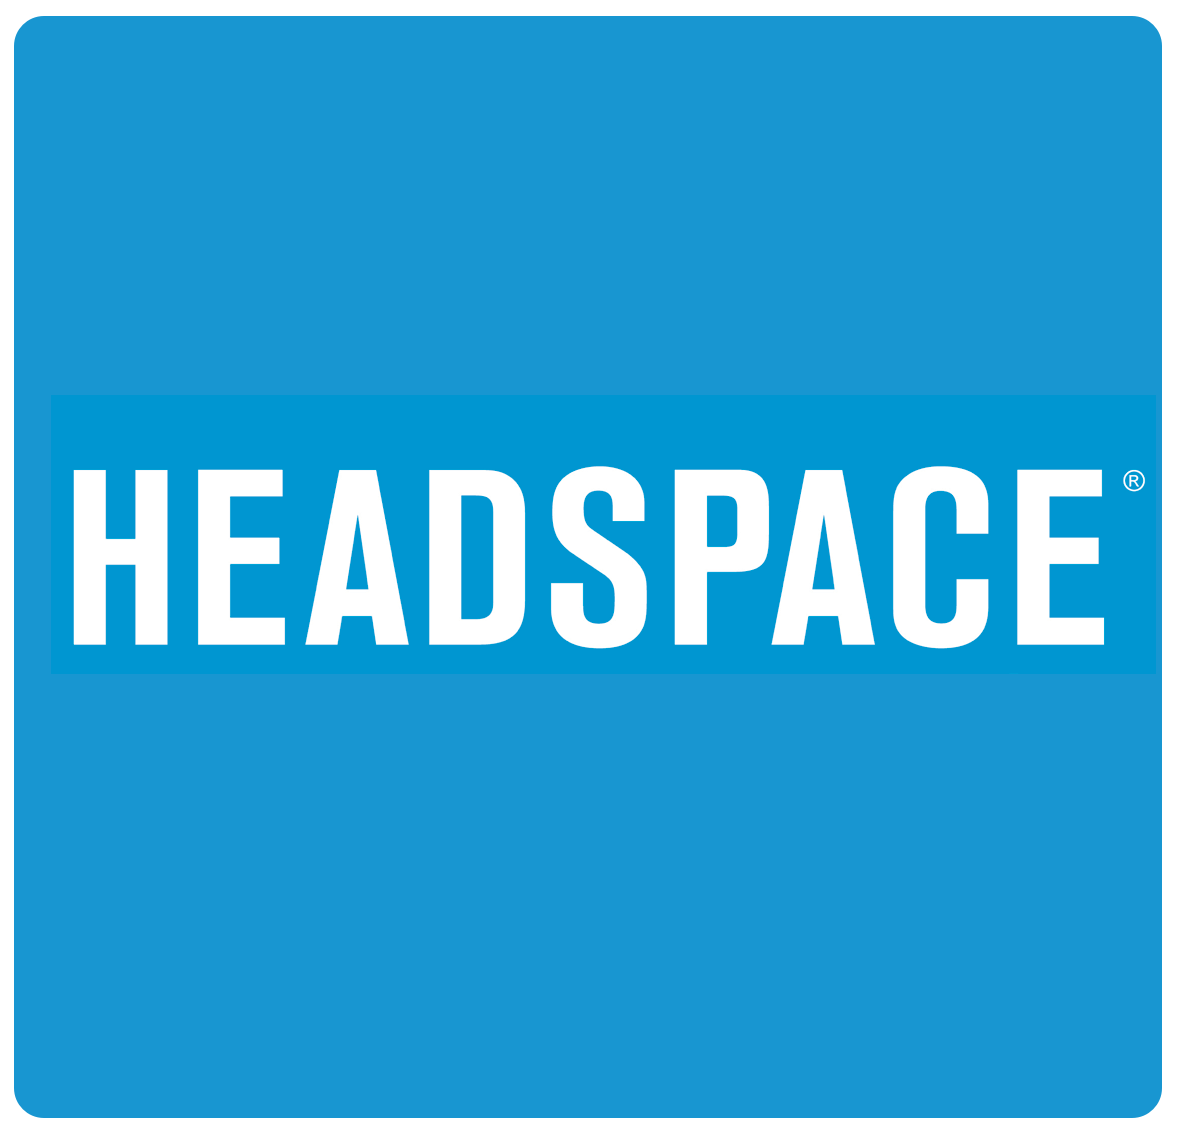 Headspace Marketing Inc.